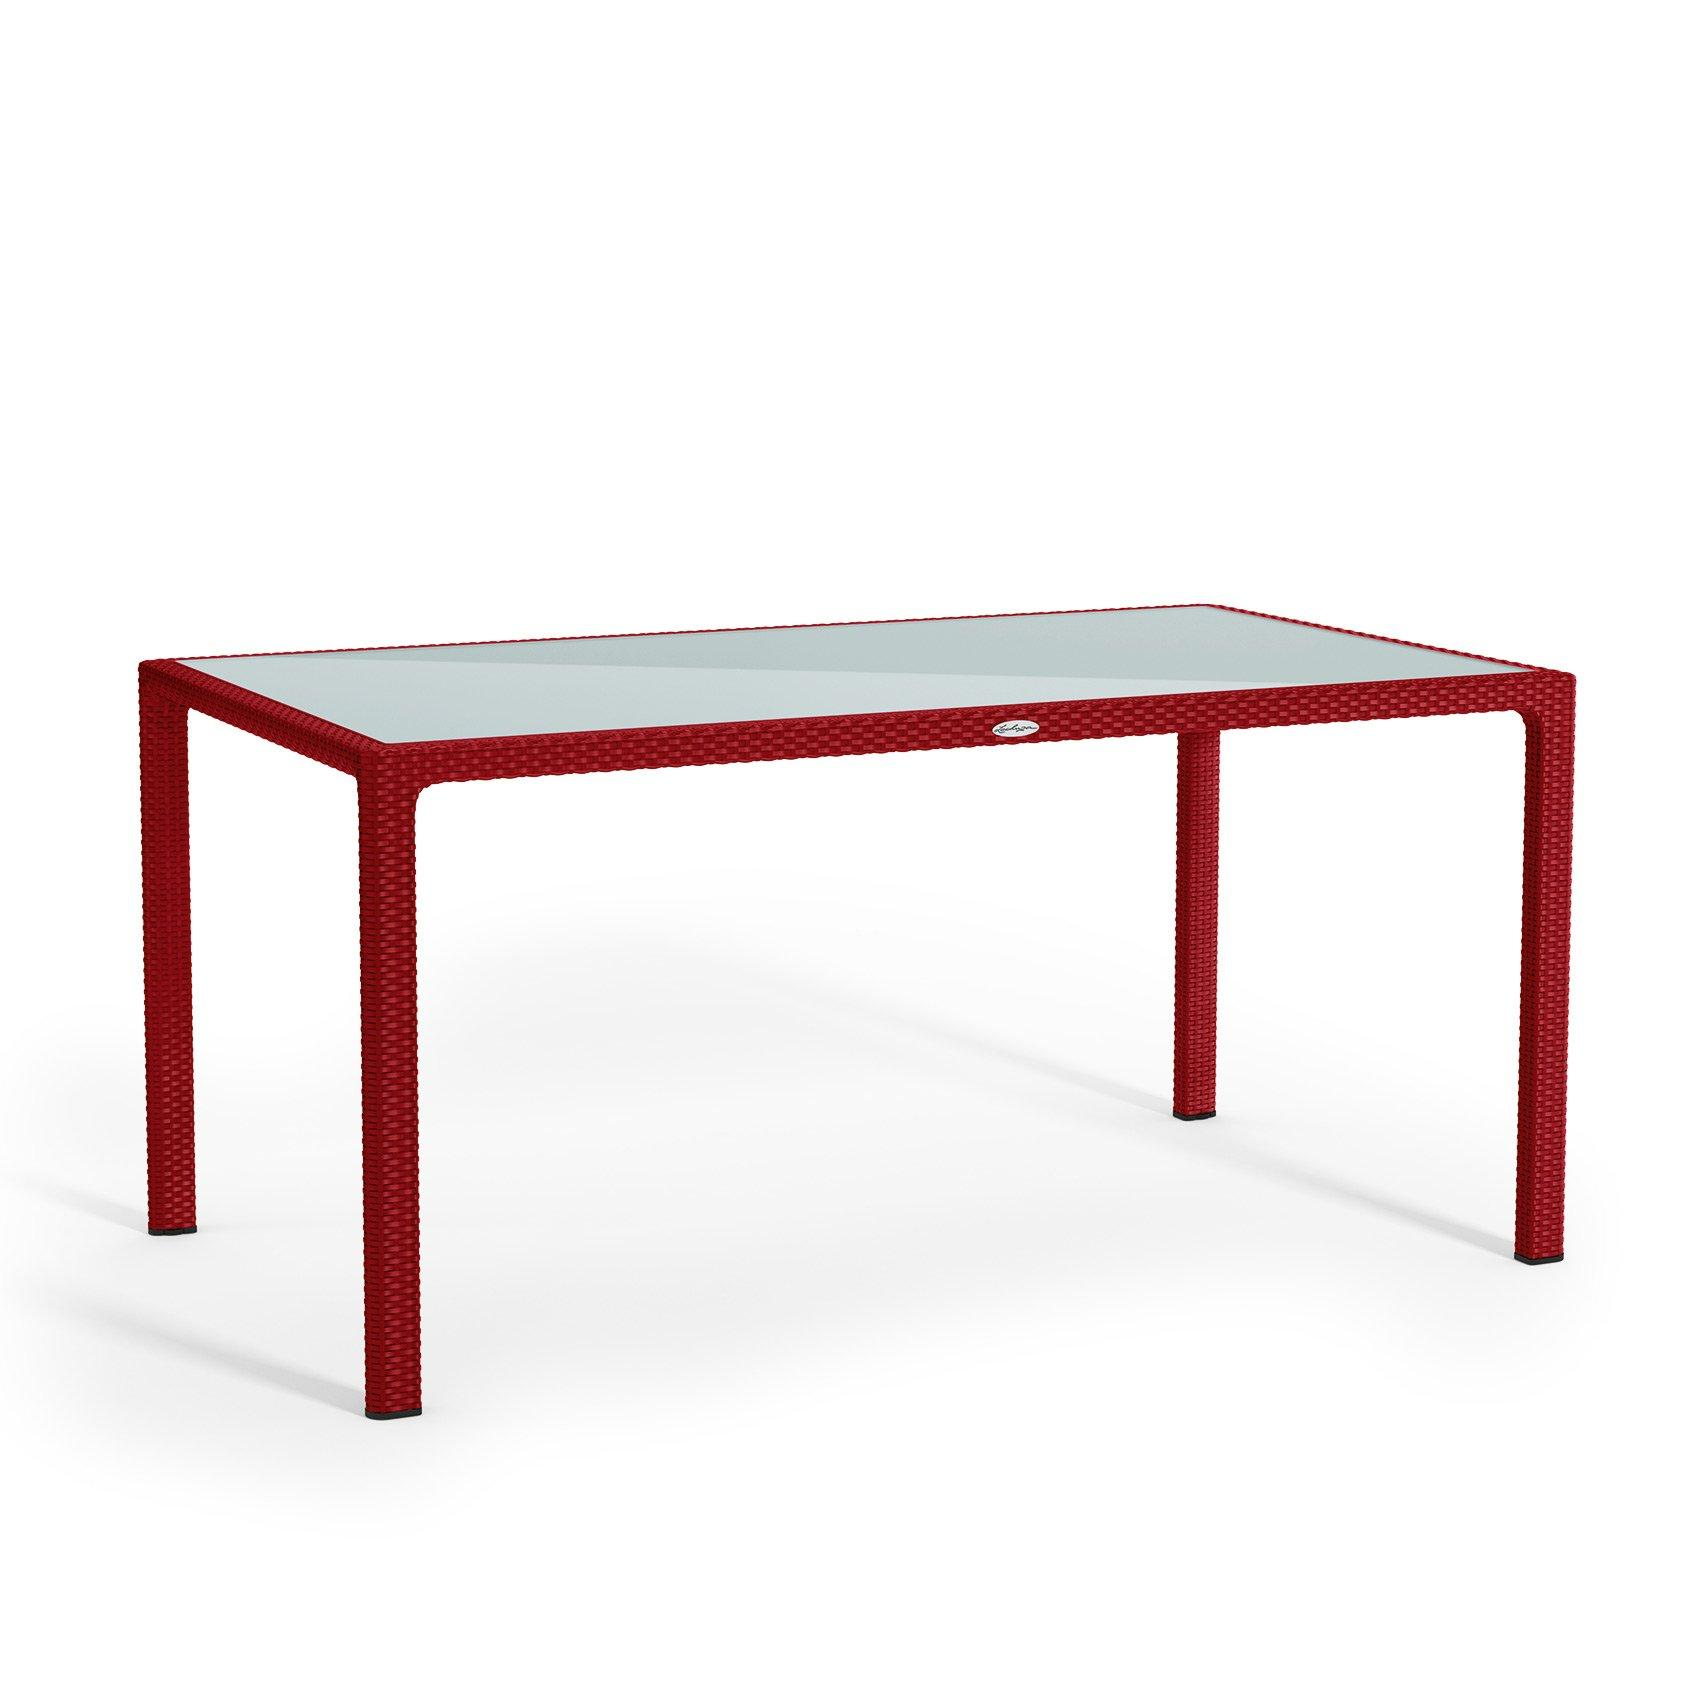 Large dining table scarlet red